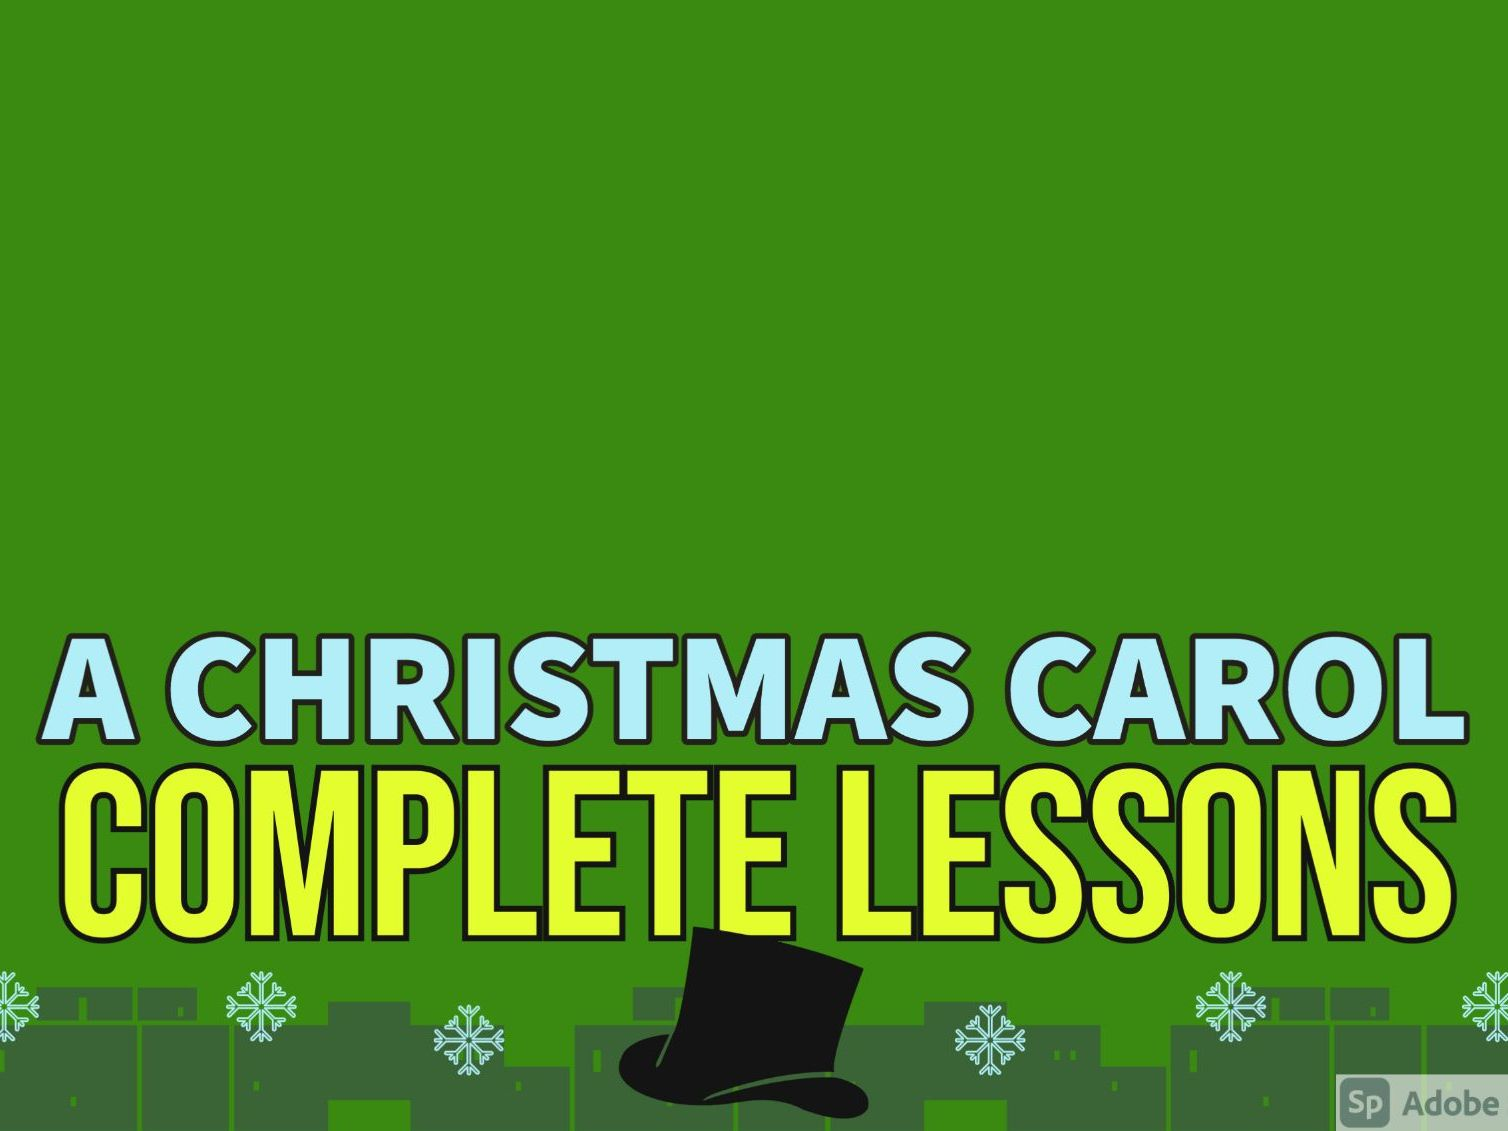 A Christmas Carol: Complete Lessons